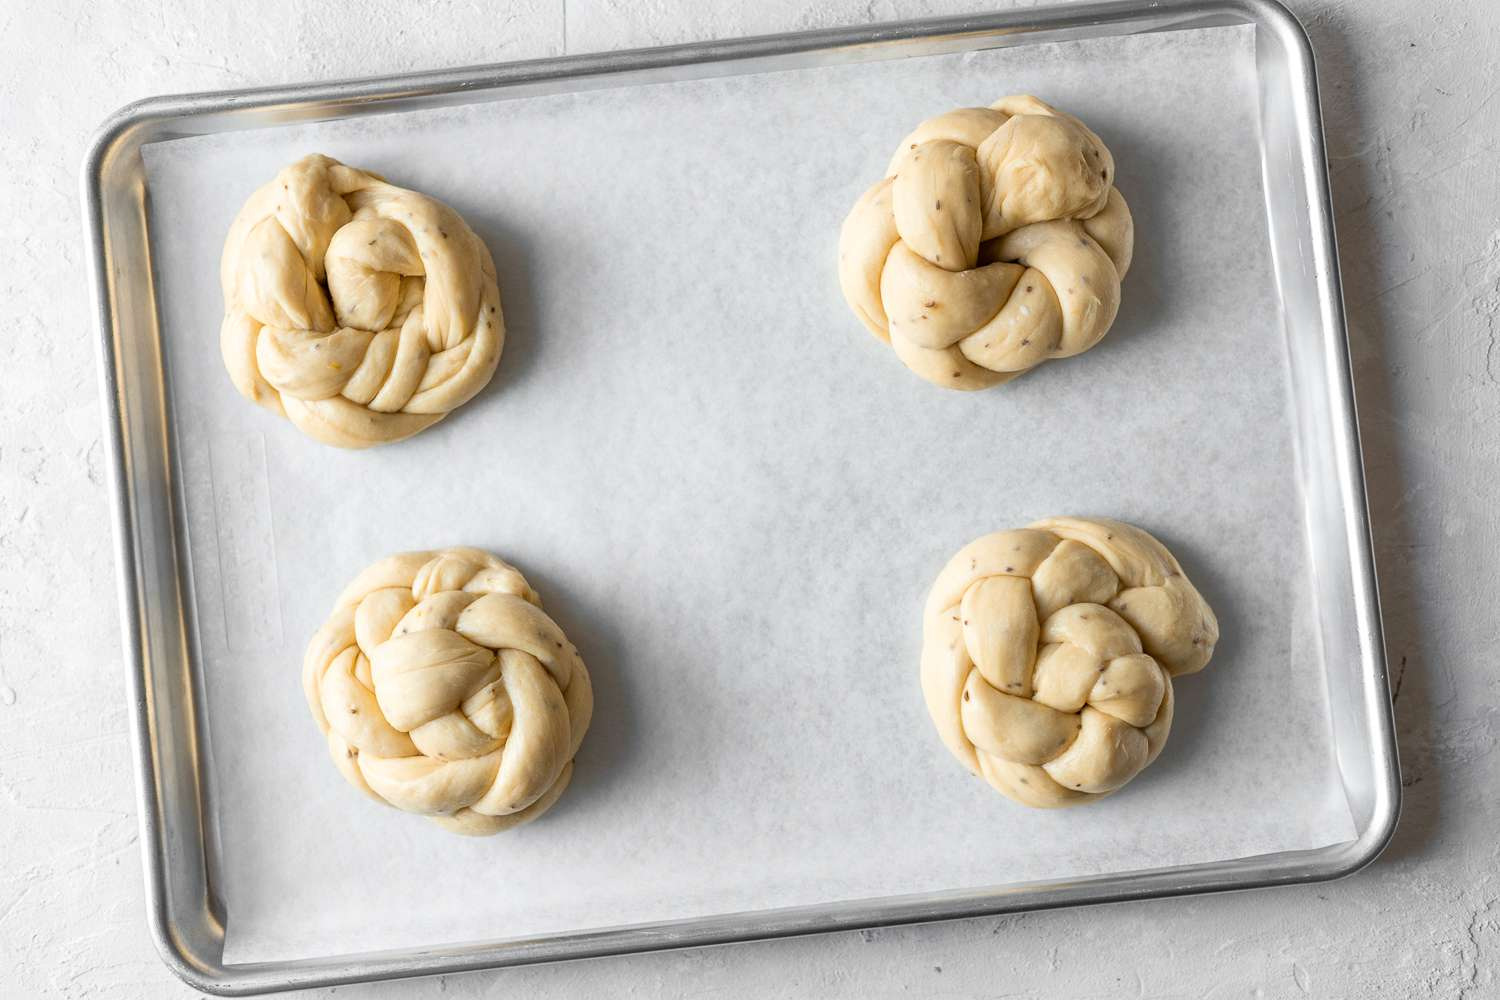 braided dough shaped into a circle